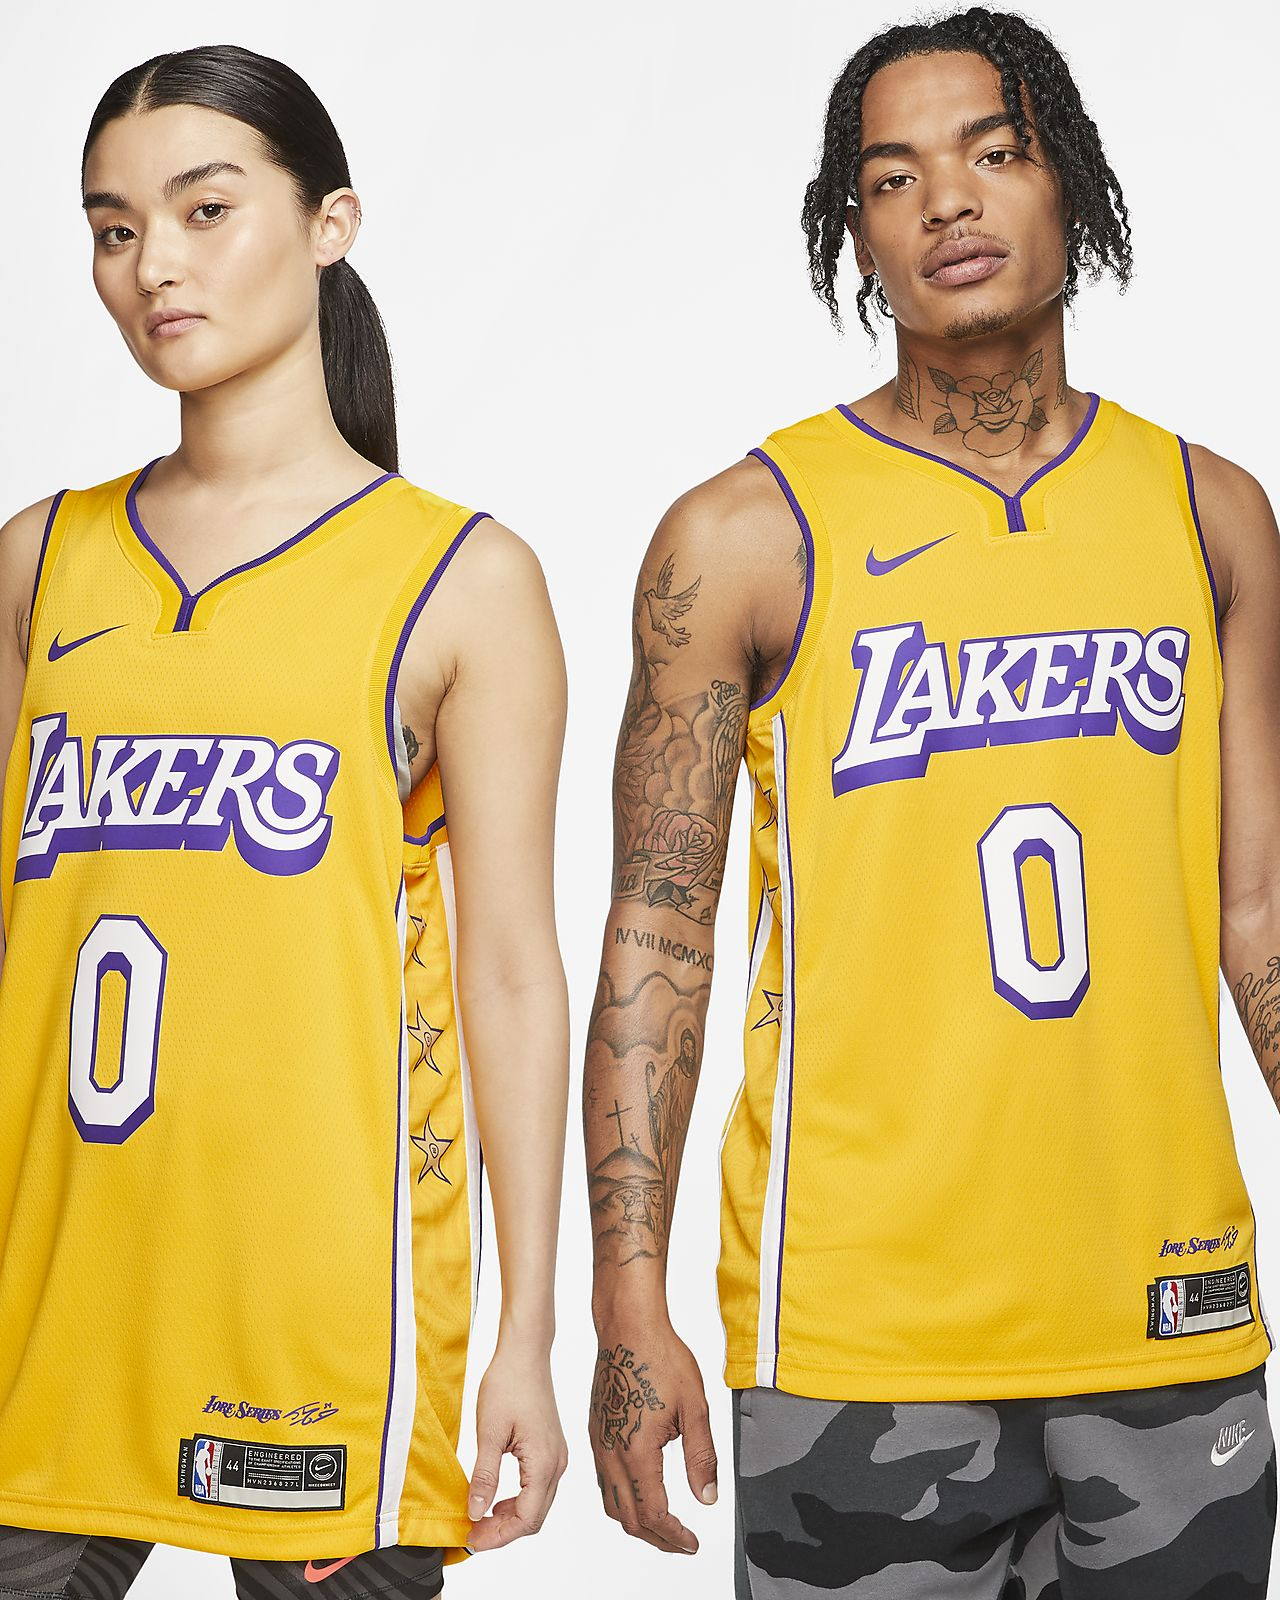 Lakers City Jersey 2019 2020 - Free Home Wallpaper HD ...